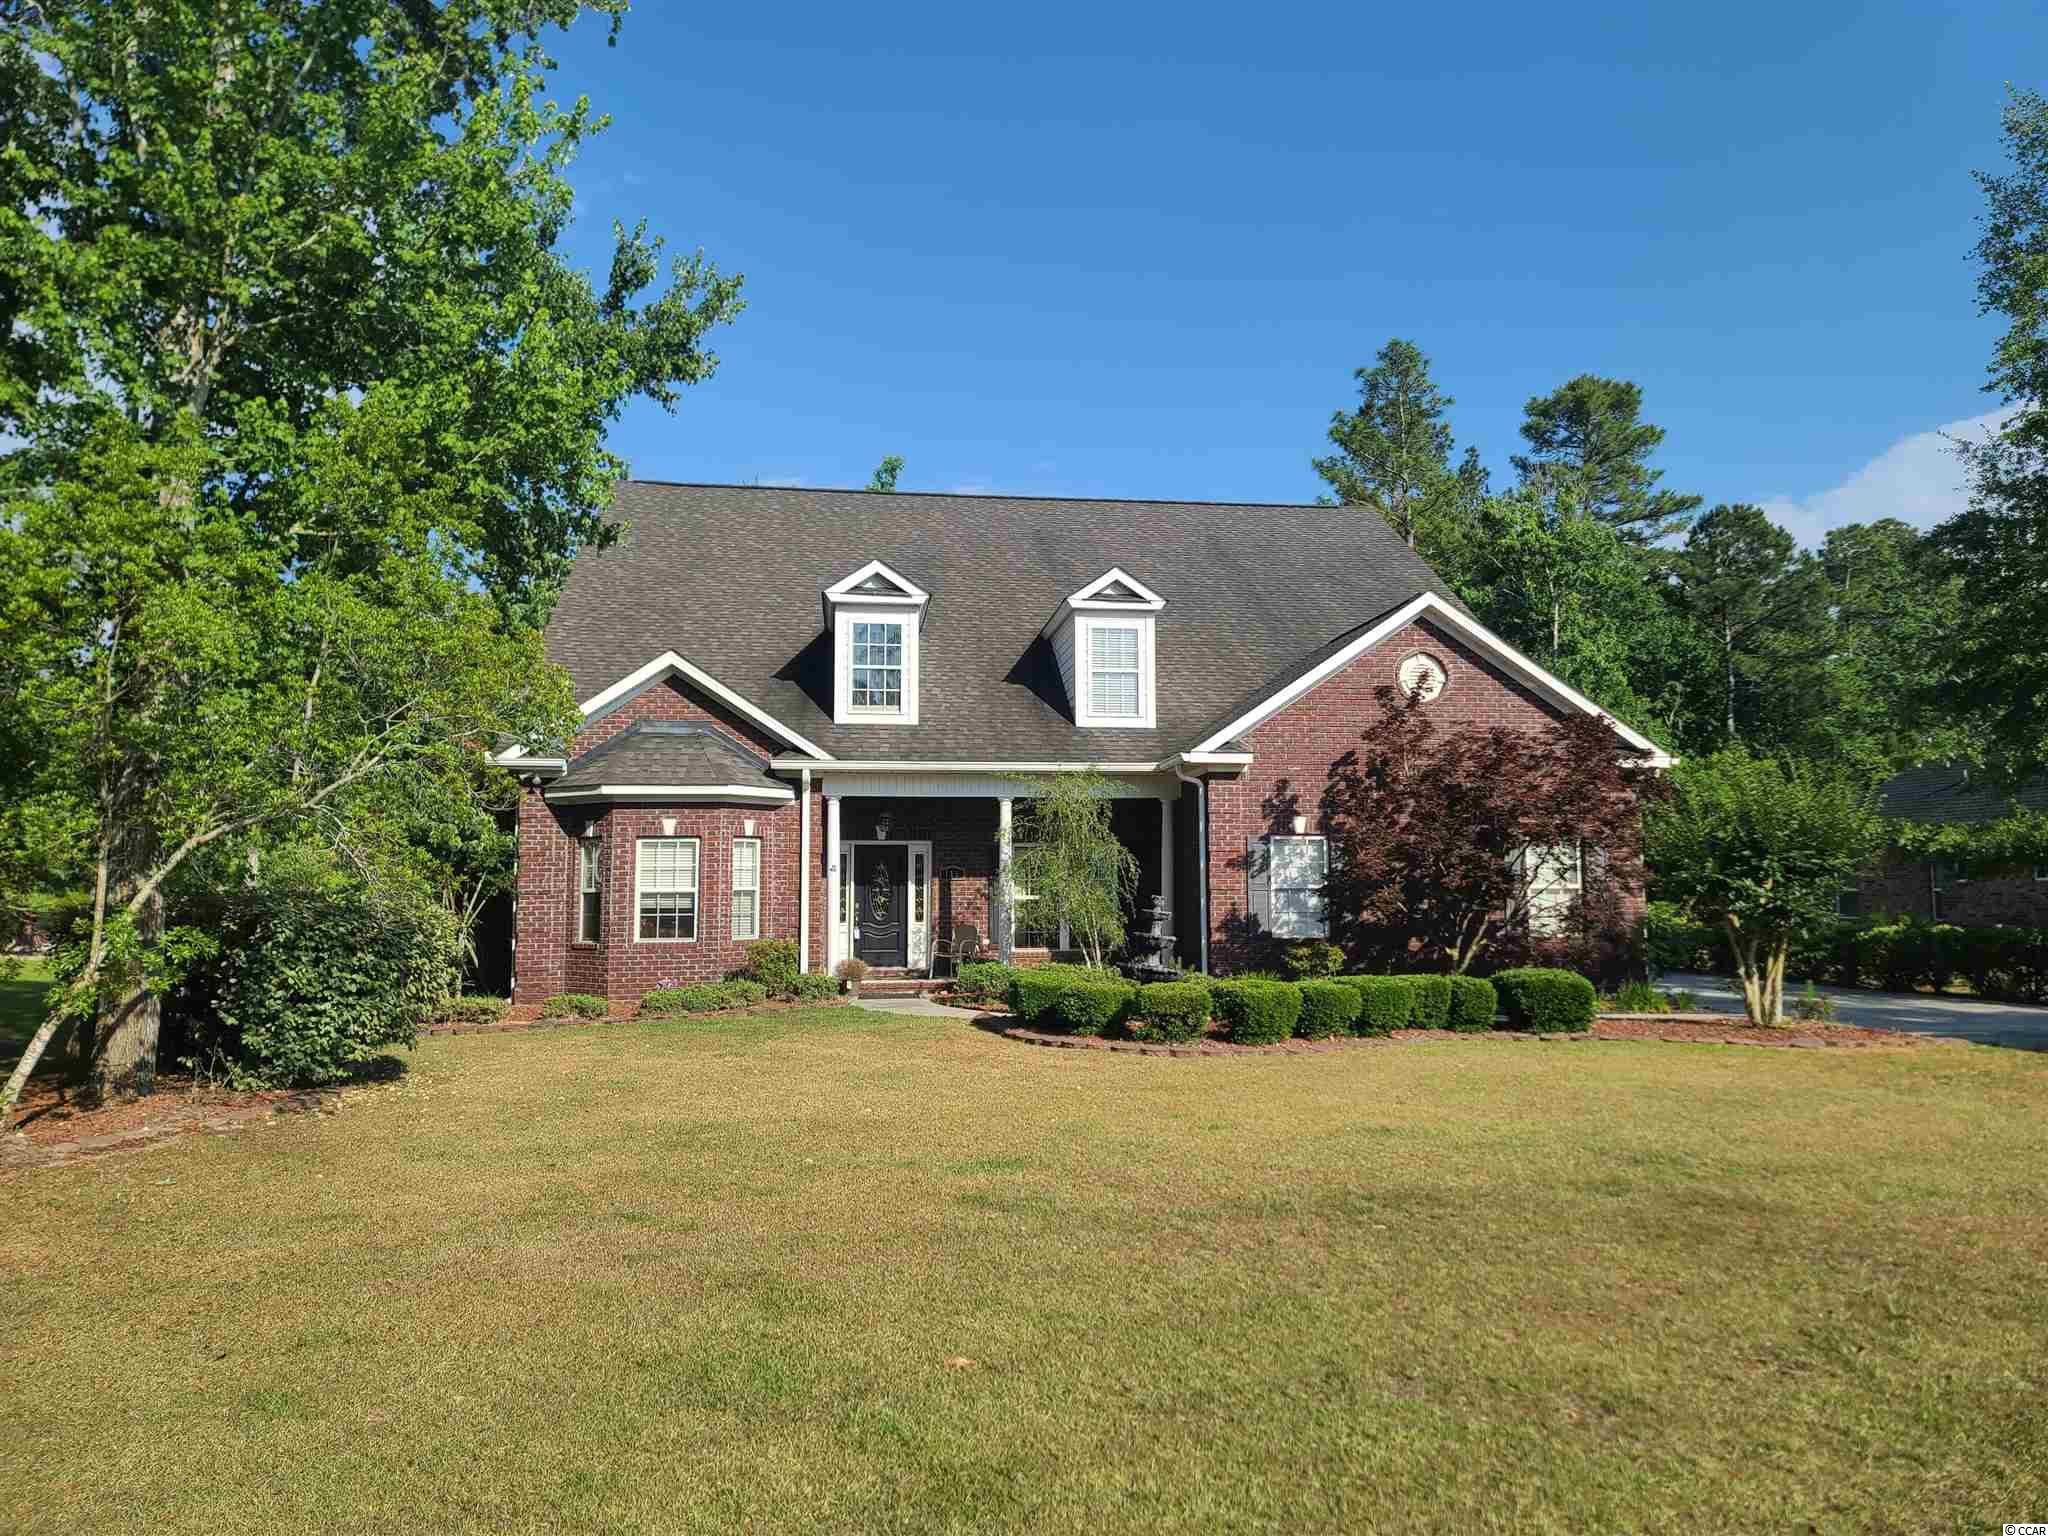 Spacious all-brick 4 BR/3.5BA with a 2 car garage on a HUGE .61 acre lot!  You'll be impressed by the extensive trim package and open concept floor plan, with a Formal Dining Room and a large Office that could be used as the 4th bedroom.  Just beyond the stunning Family Room is a Carolina Room, separate by a gorgeous double-sided fireplace.  Adjacent is a bright Kitchen and Eating area that boasts tons of cabinet space, including a work island and gorgeous granite counter tops that highlight the Stainless Steel Appliances.  The Master Suite is conveniently located on the First Floor, and features a luxury Master Bath with double sinks, custom tile shower, and a garden tub.  Separate In-Law or Guest Suite offers it's own full bath and is perfect for someone needing a private room on the first floor.  Just minutes to many fine restaurants, shopping and the beach!  Don't miss this one!